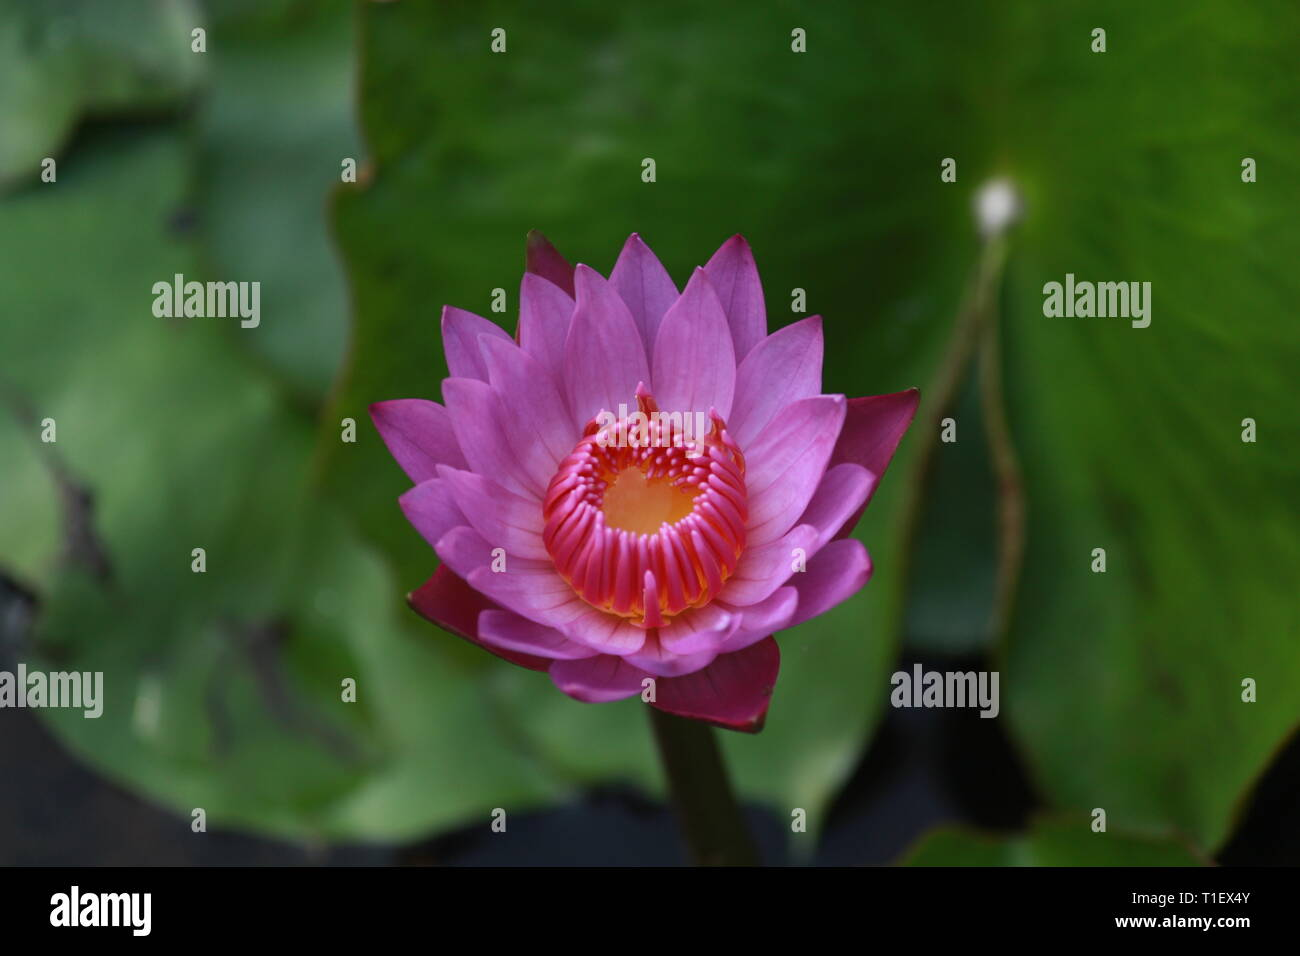 Bjp Stock Photos Bjp Stock Images Page 9 Alamy